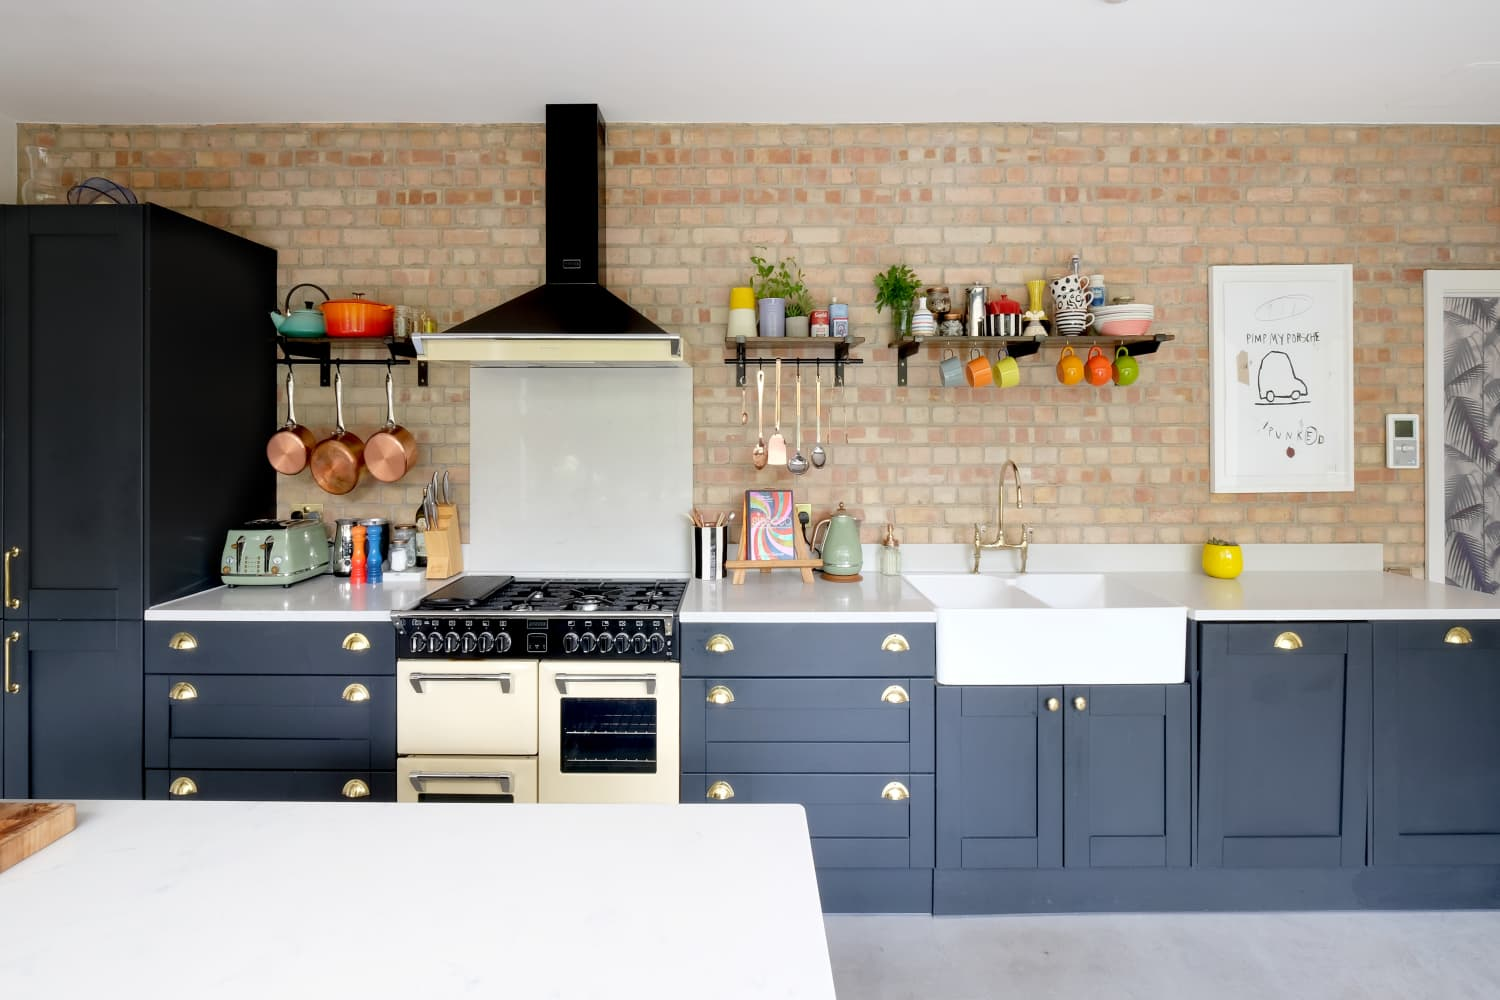 How to Paint Kitchen Cabinets So It Lasts